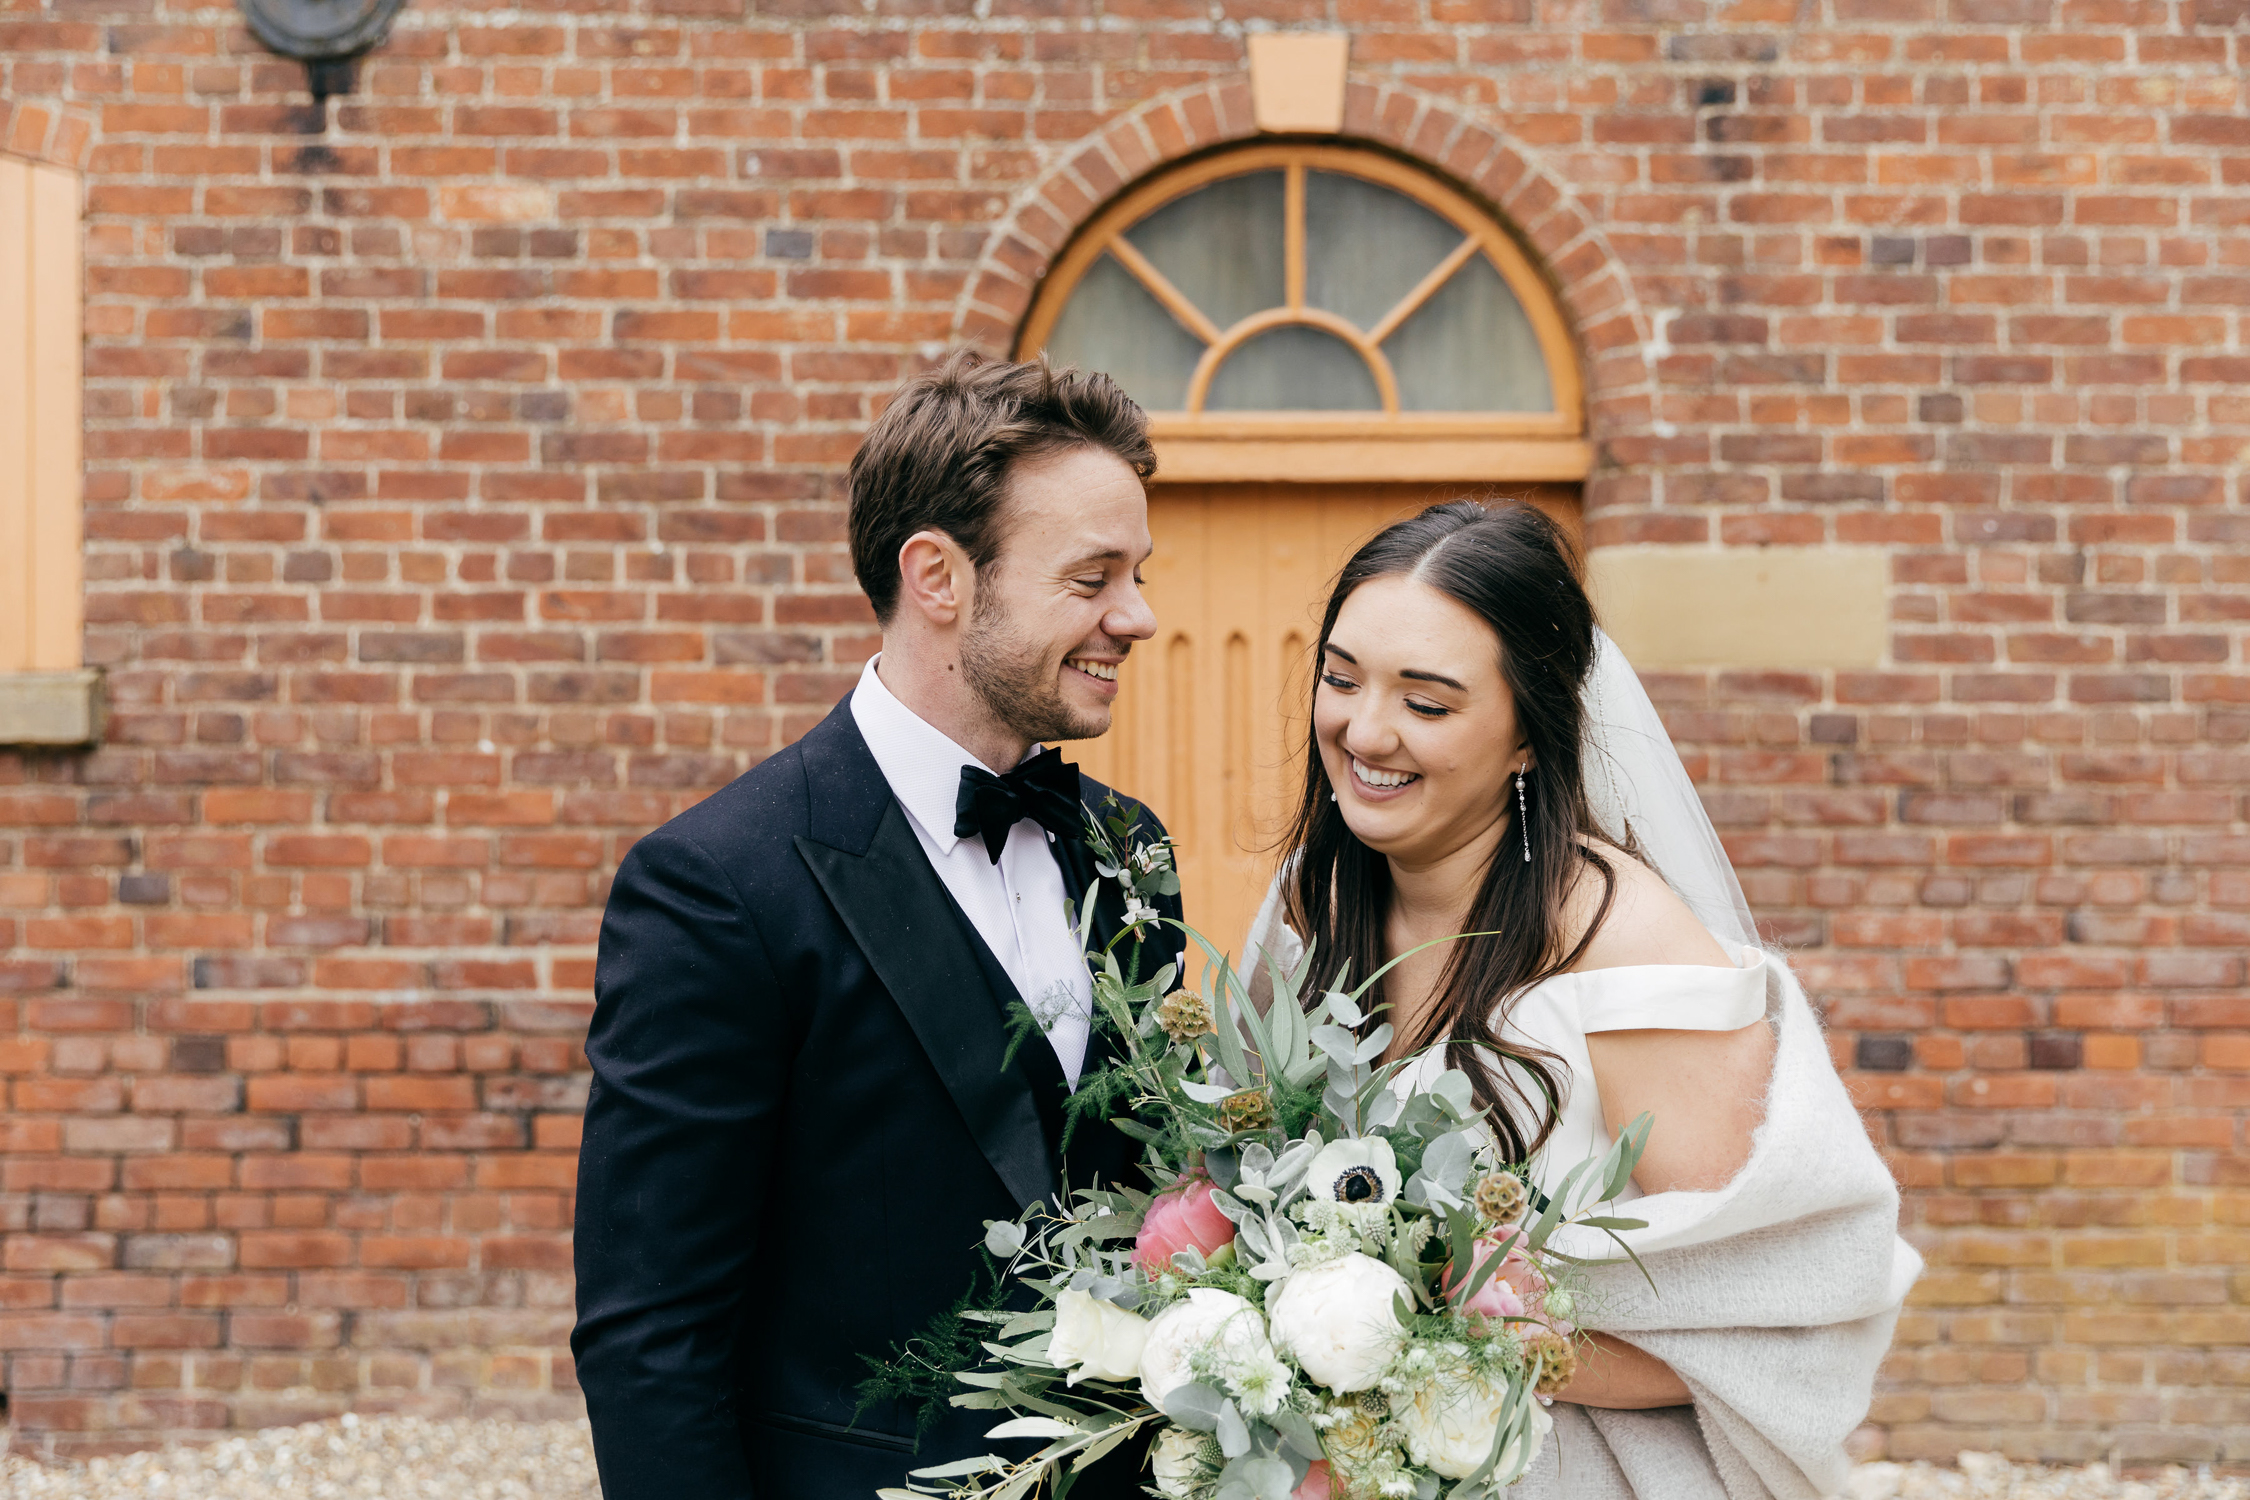 relaxed bride and groom wedding photography